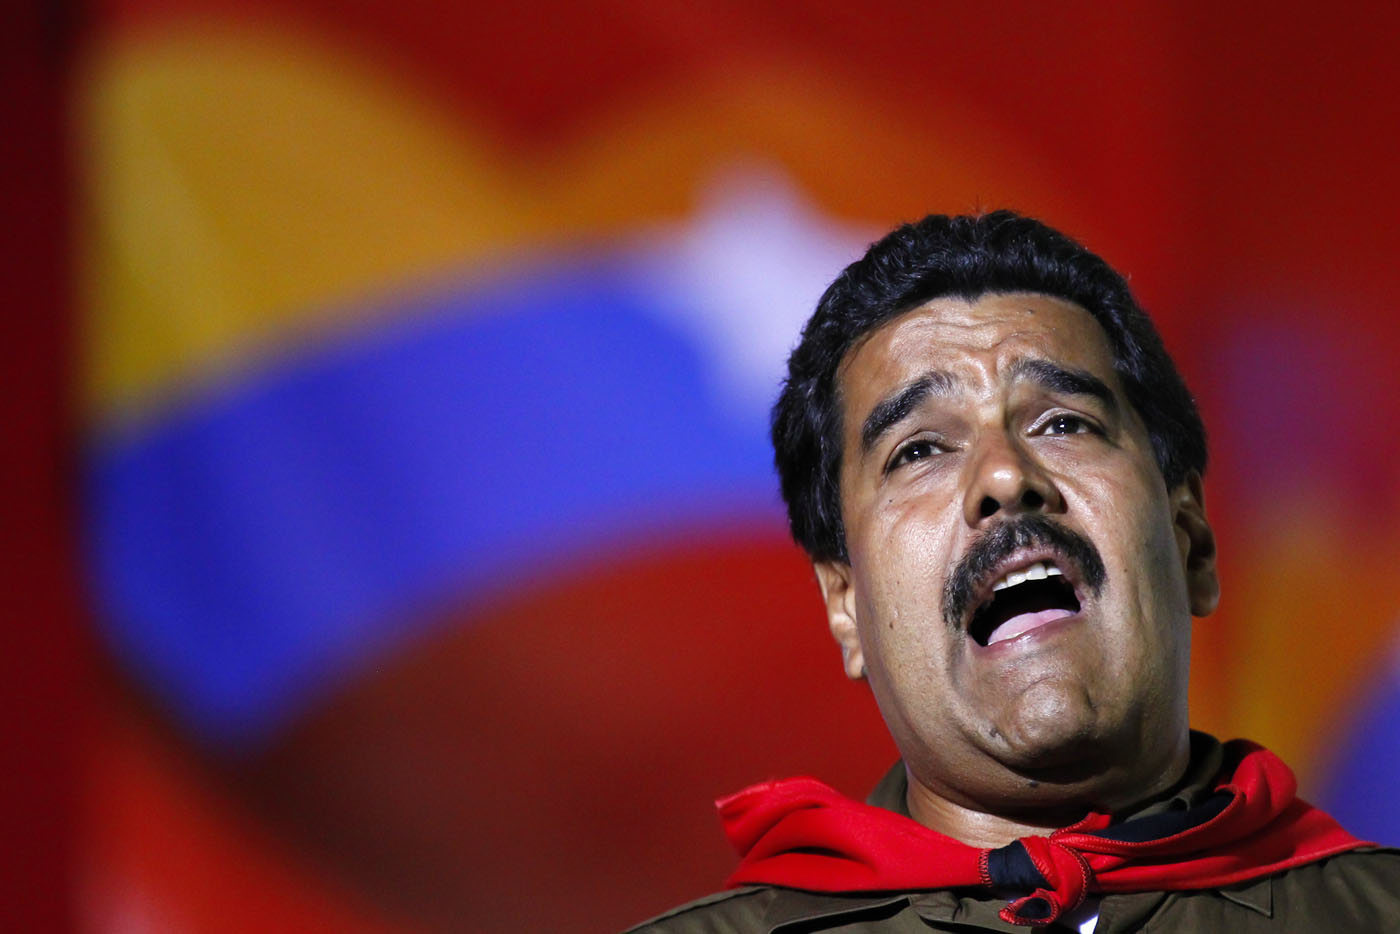 Venezuela's presidential candidate Nicolas Maduro sings during a campaign rally in Caracas